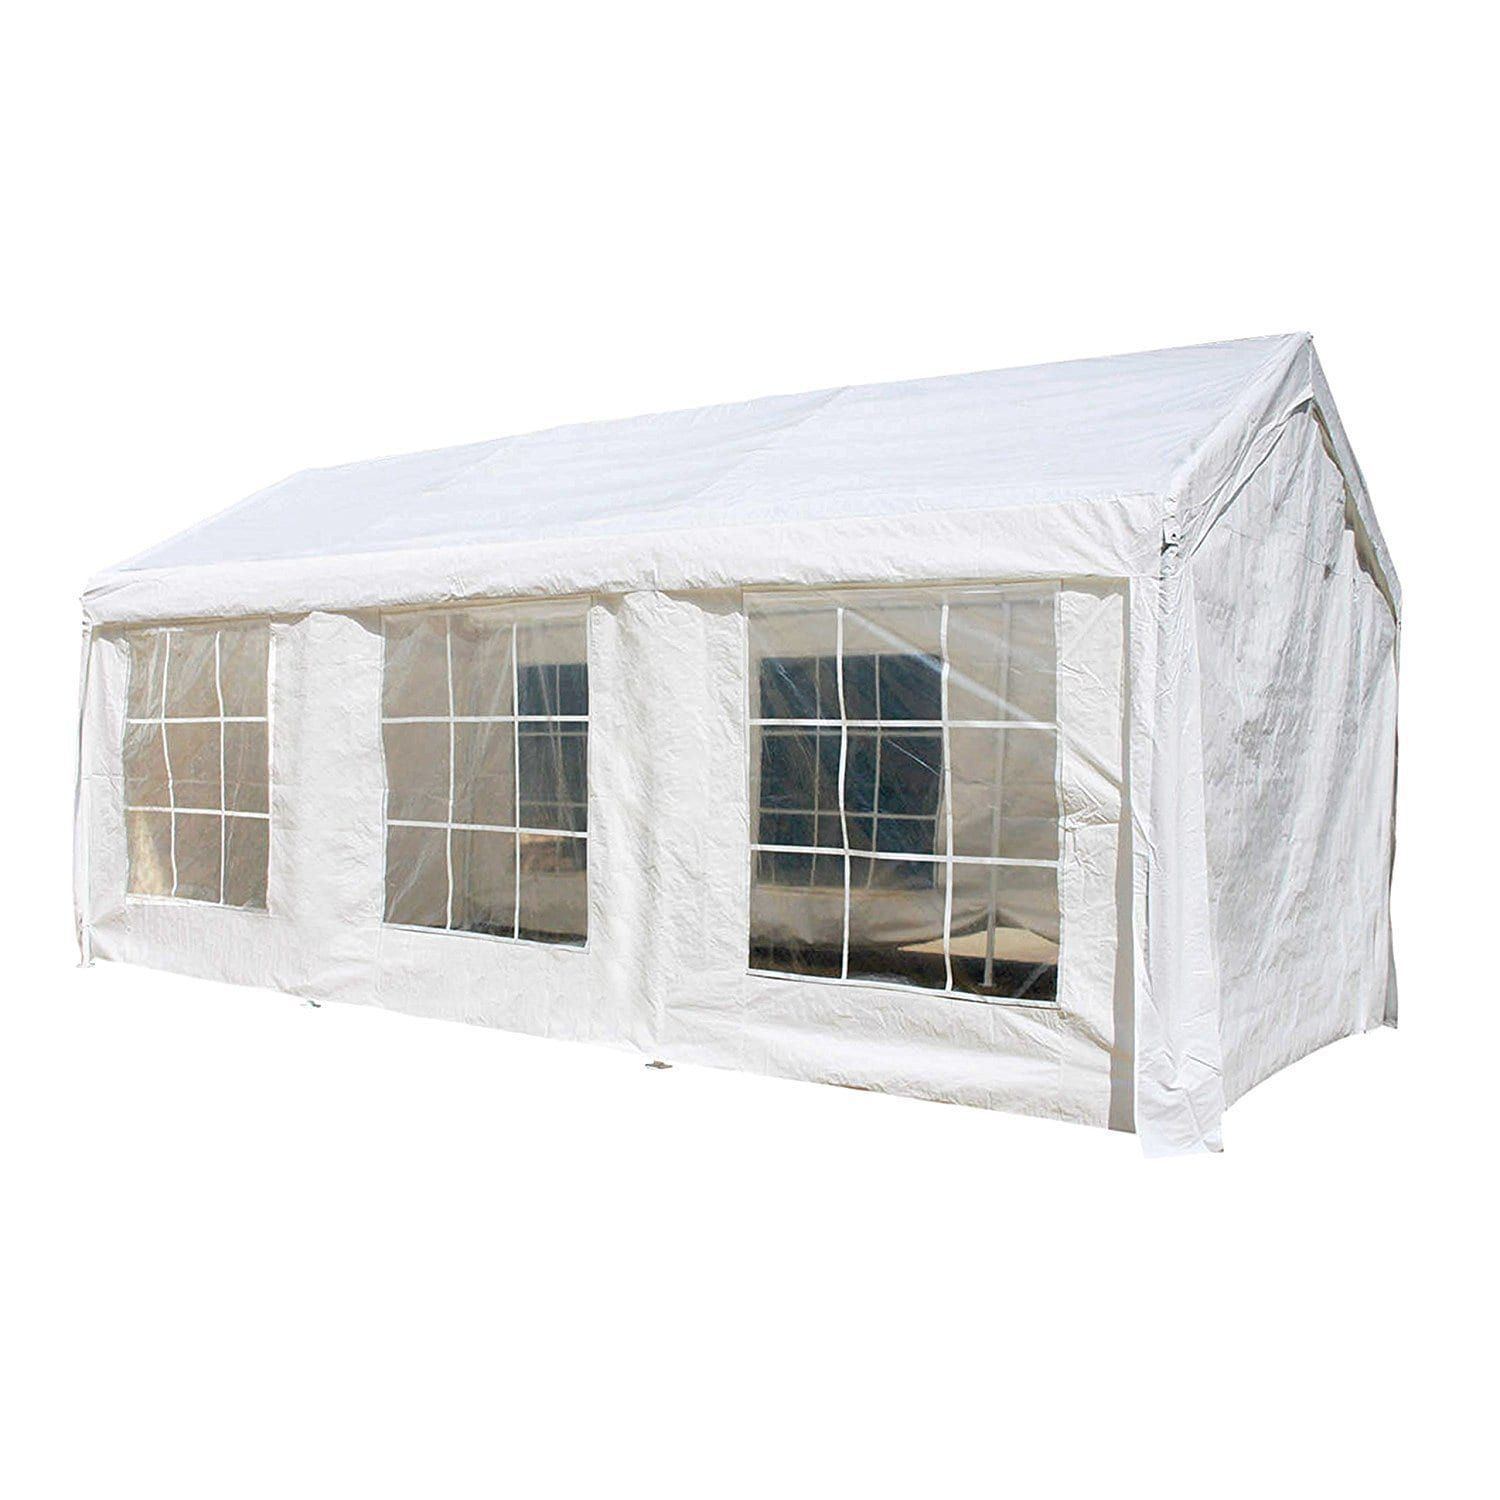 Aleko 10x20 Feet Outdoor White Gazebo Canopy Tent With Sidewalls White Products In 2019 Gazebo Canopy Outdoor Gazebos Canopy Tent